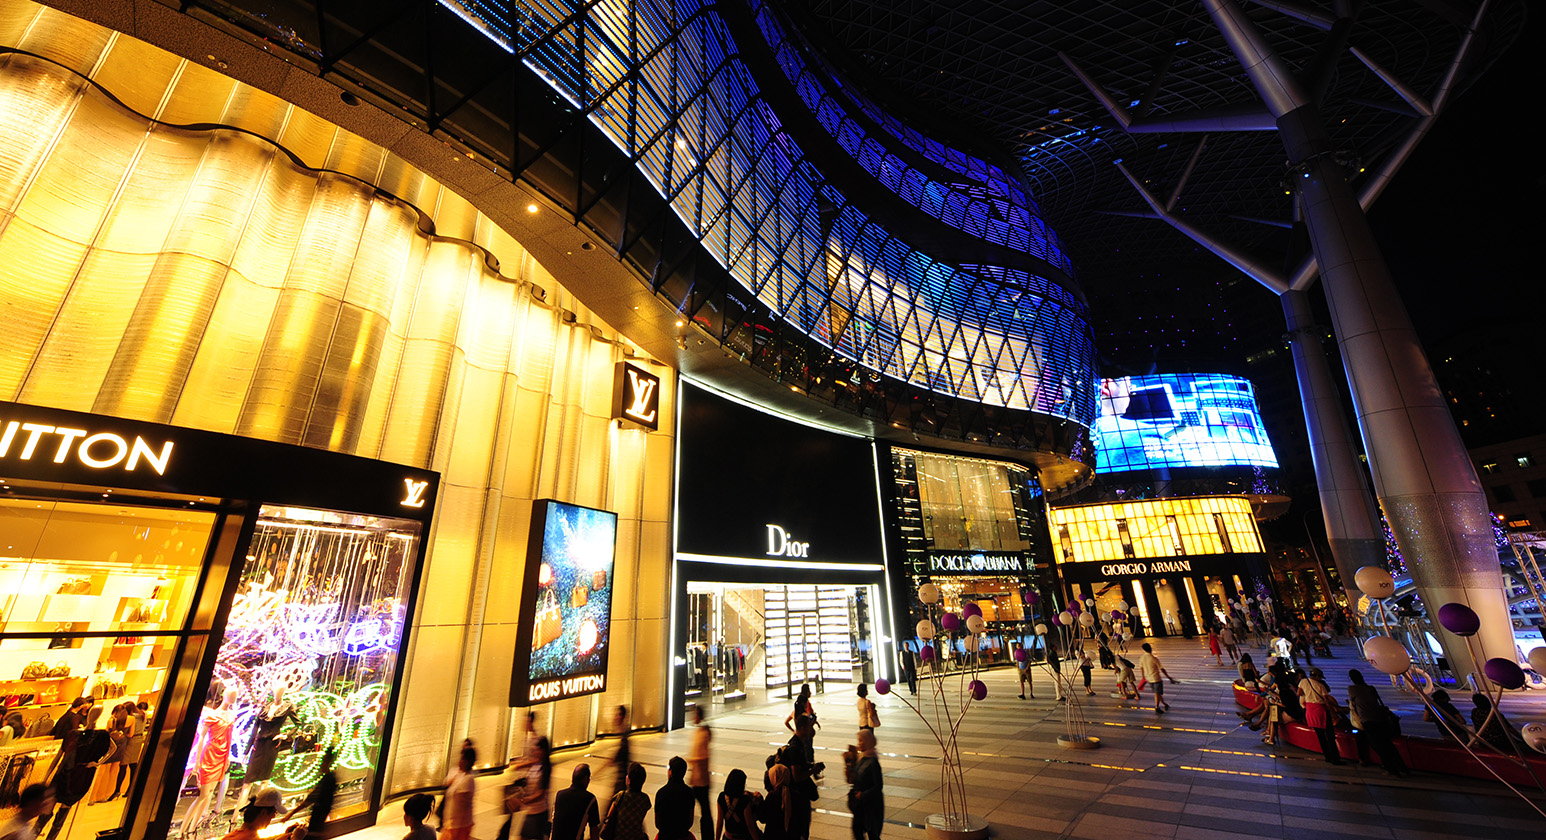 2Shopping Malls_Singapore_Ion Orchard_Ion Orchard Singapore-Duplex Frontage